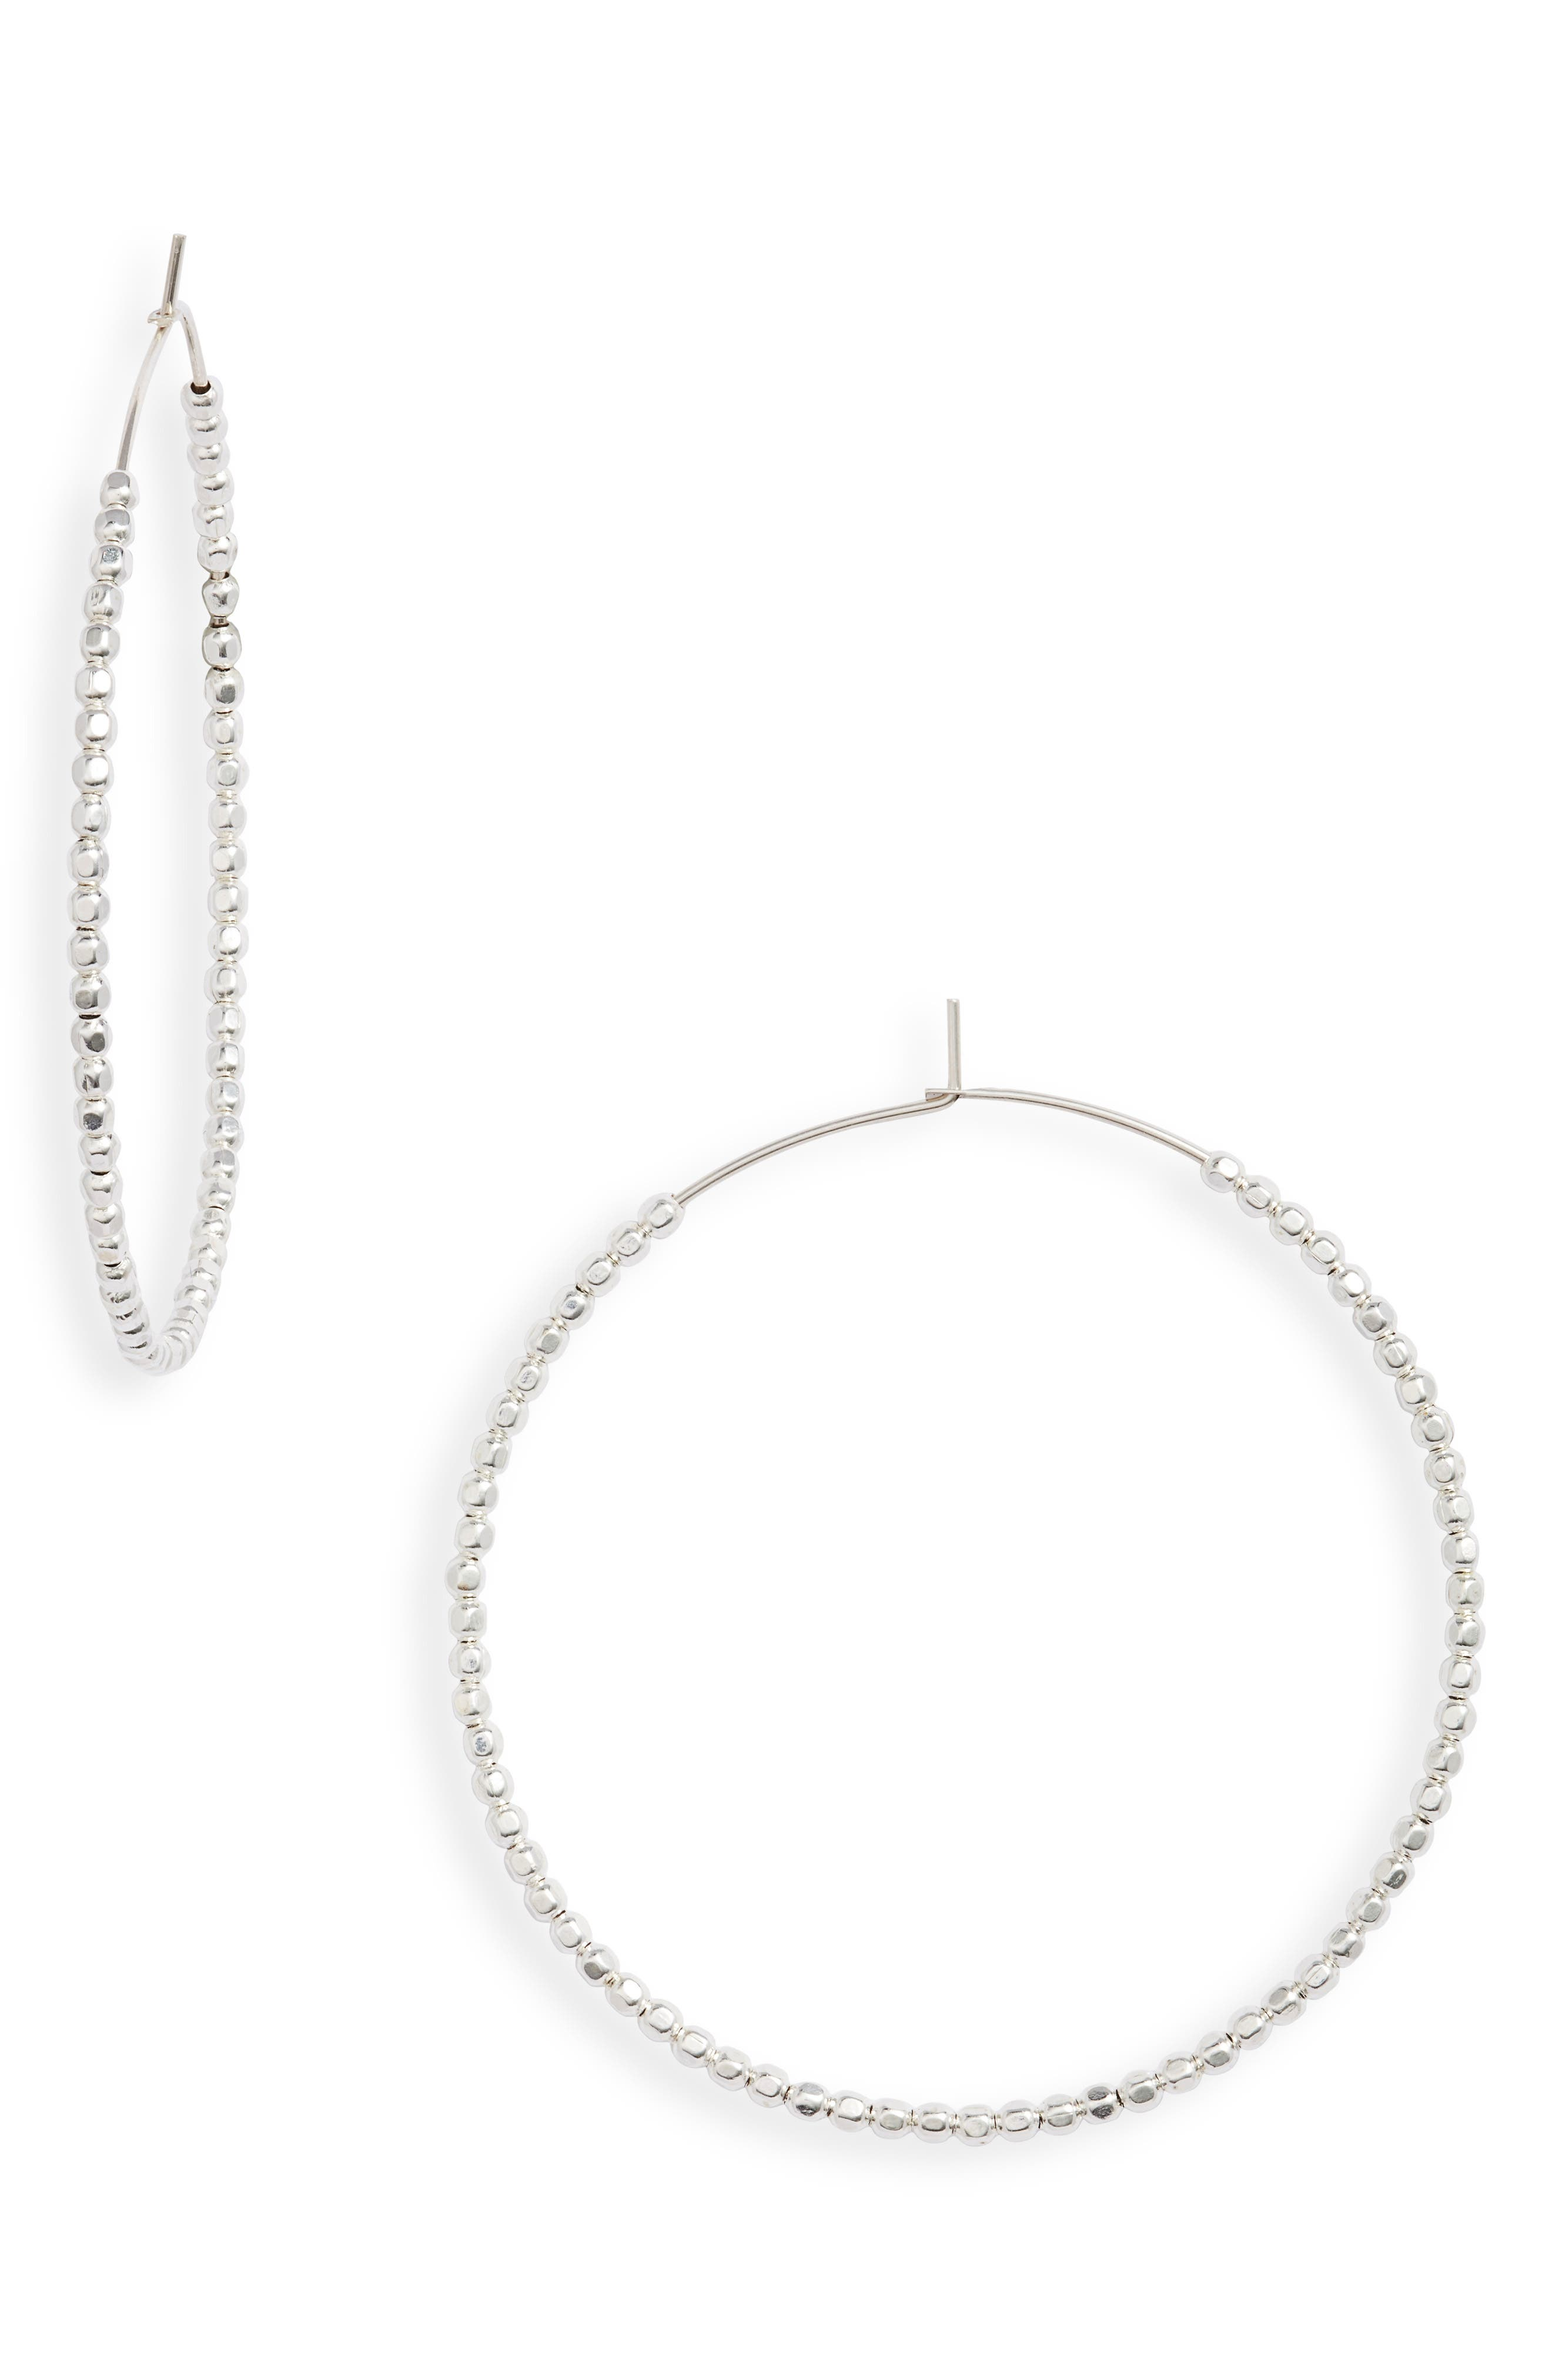 These large wire hoops threaded with metal beads pack a lot of chic attitude. Style Name: Set & Stones Erin Hoop Earrings. Style Number: 5966507. Available in stores.